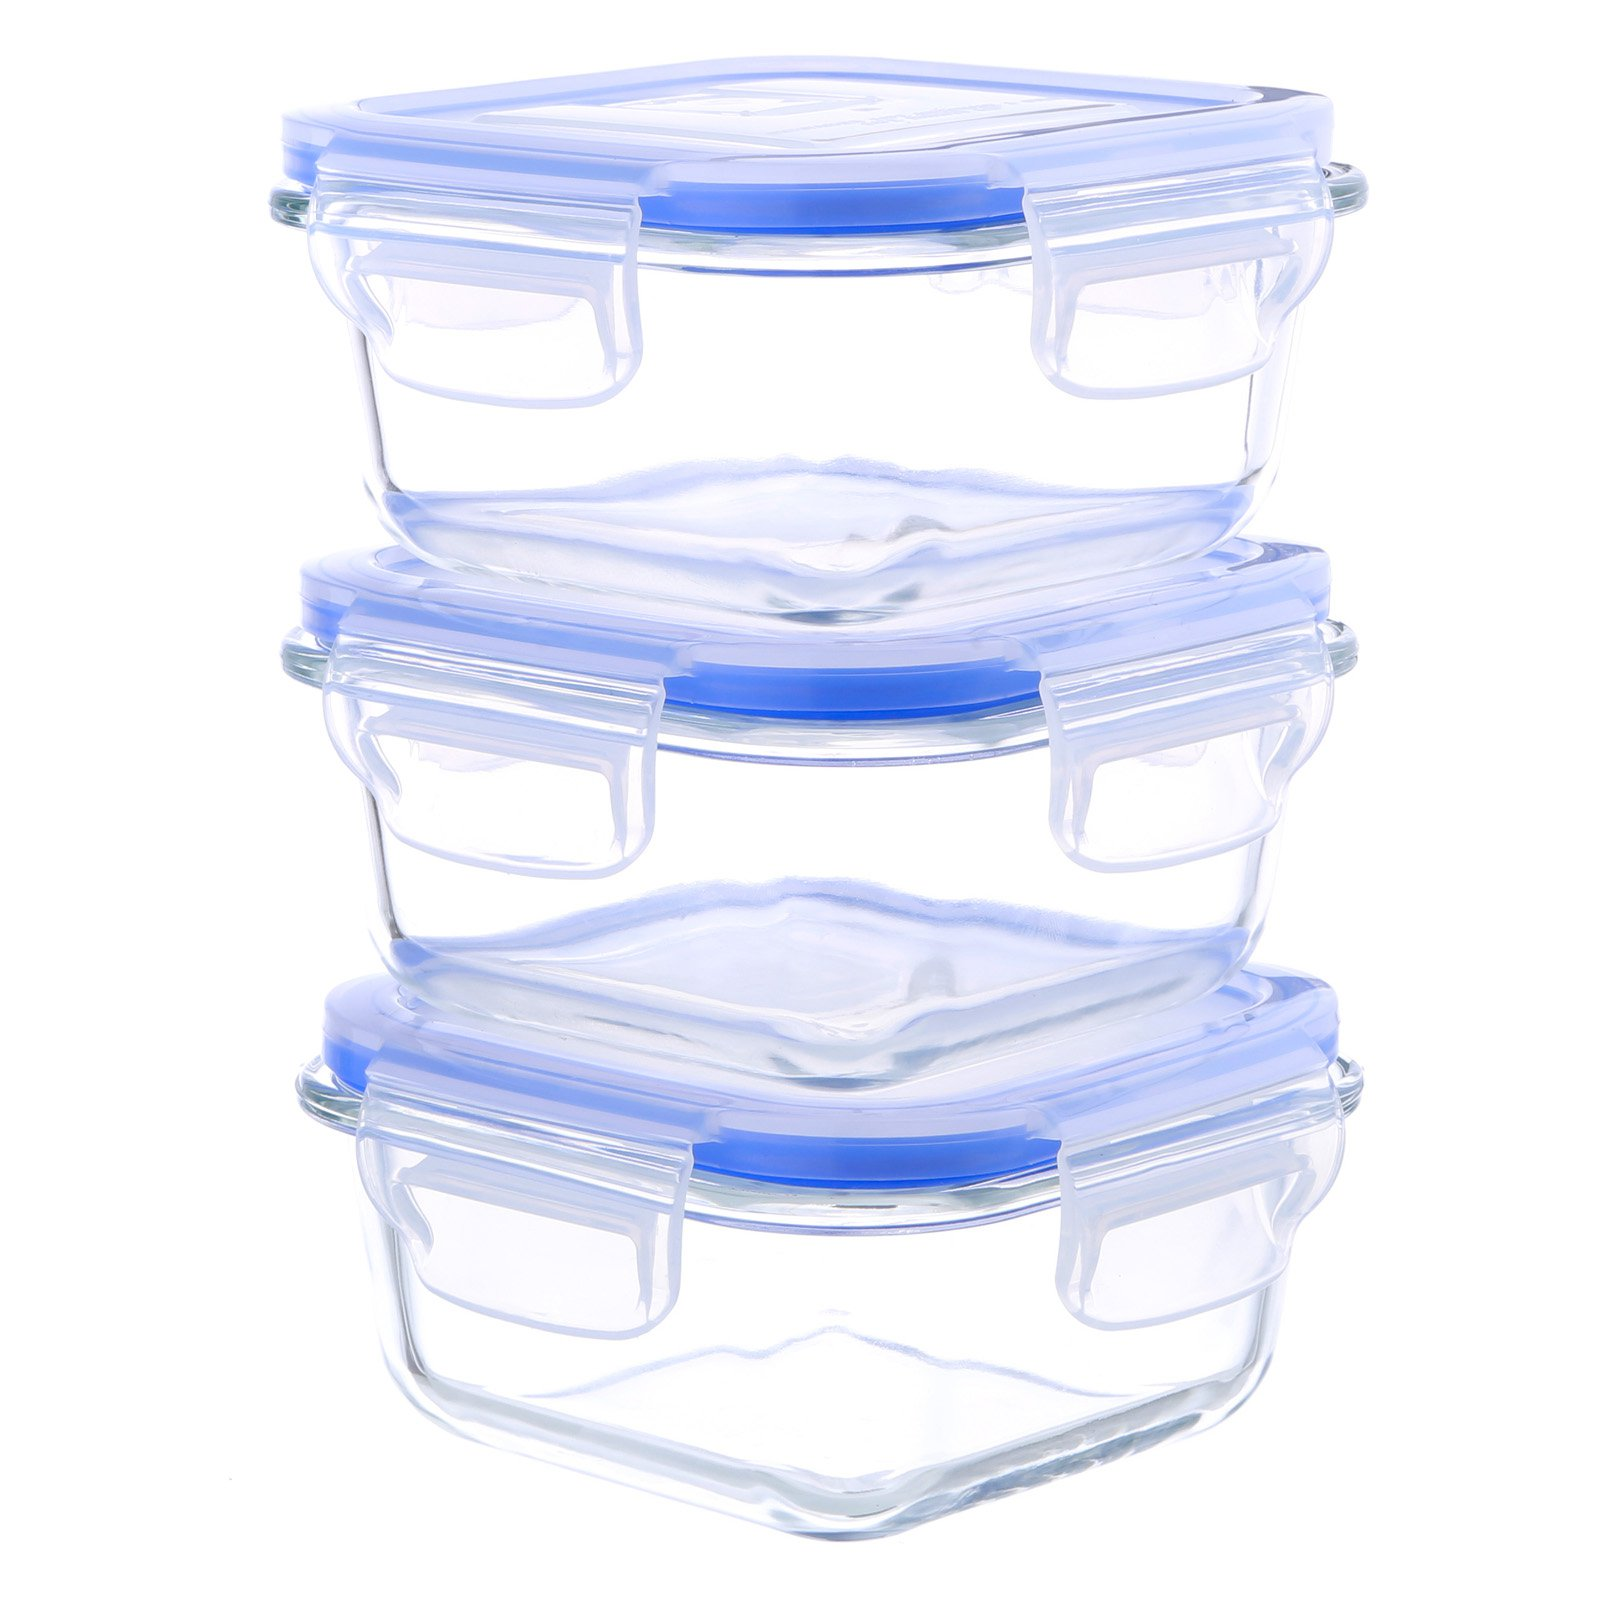 Kinetic GoGreen Glassworks 6-Piece Square Oven Safe Glass Food Storage Container Set with Vented Lid; 17 oz. Each